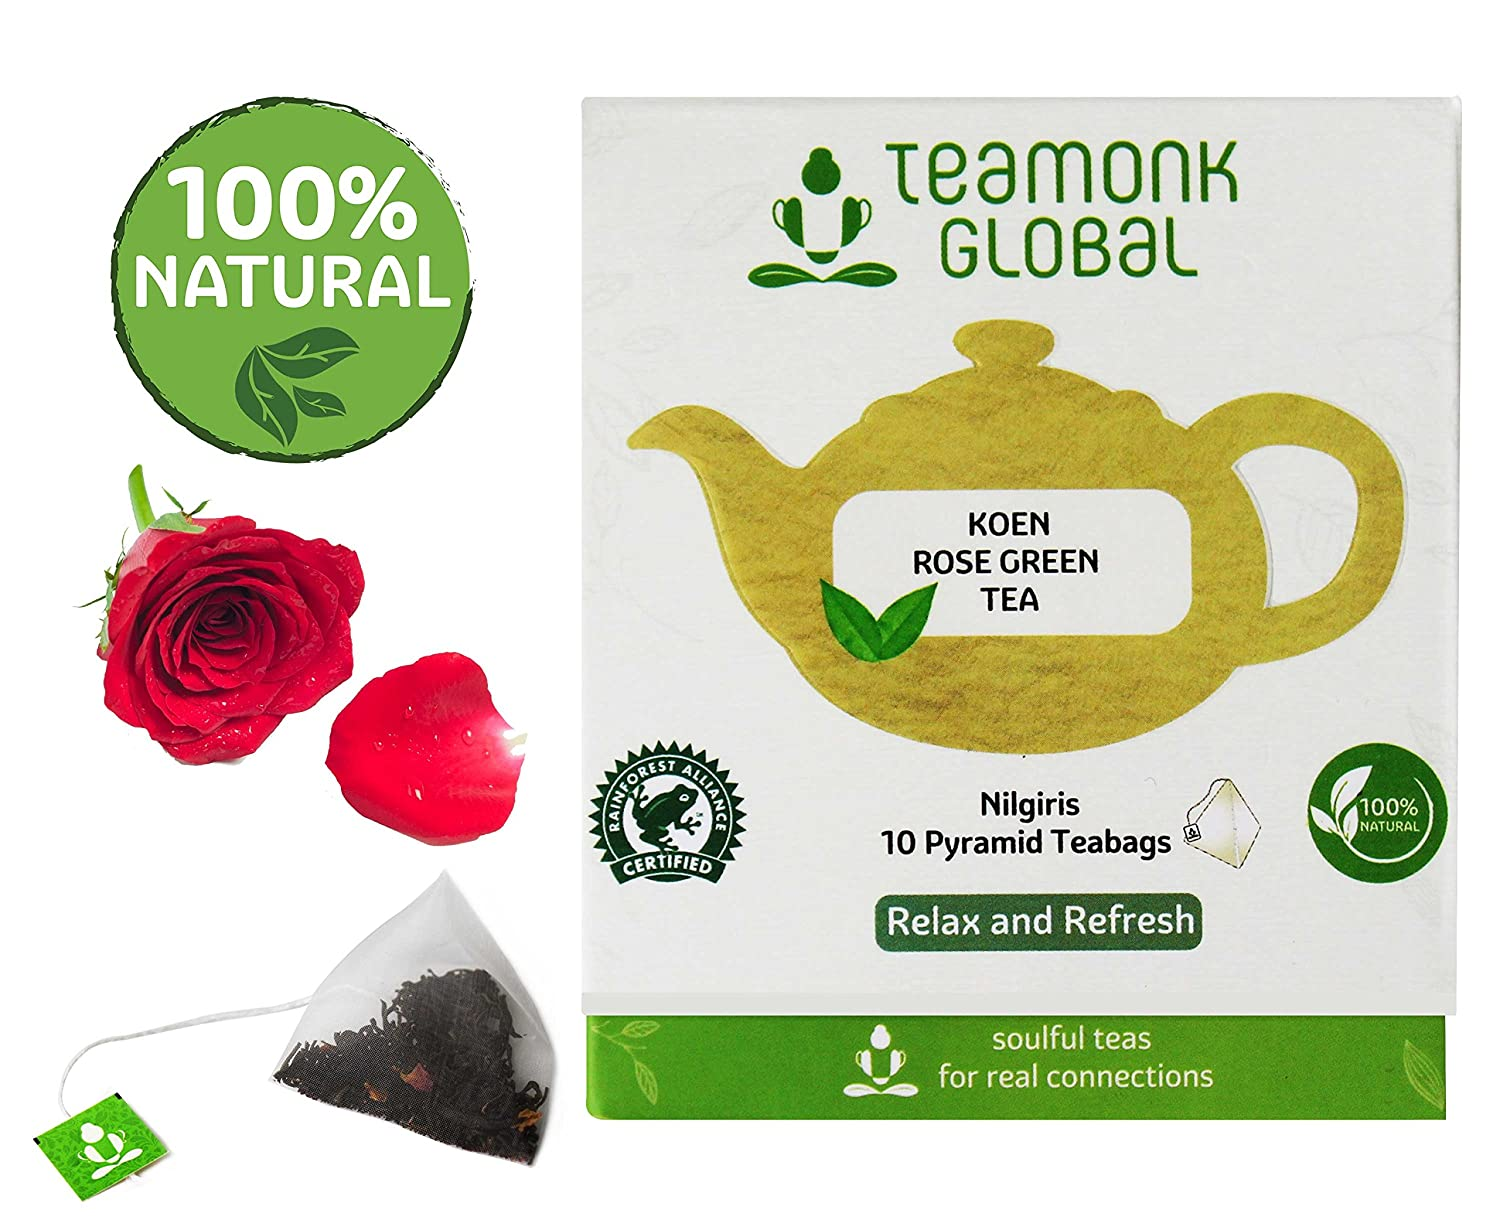 Amazon.com : Nilgiri Ginger Green Tea, 10 Teabags   Supports Weight Loss & Digestion   100% Natural Ginger with Whole Leaf Green Tea   No additives ...